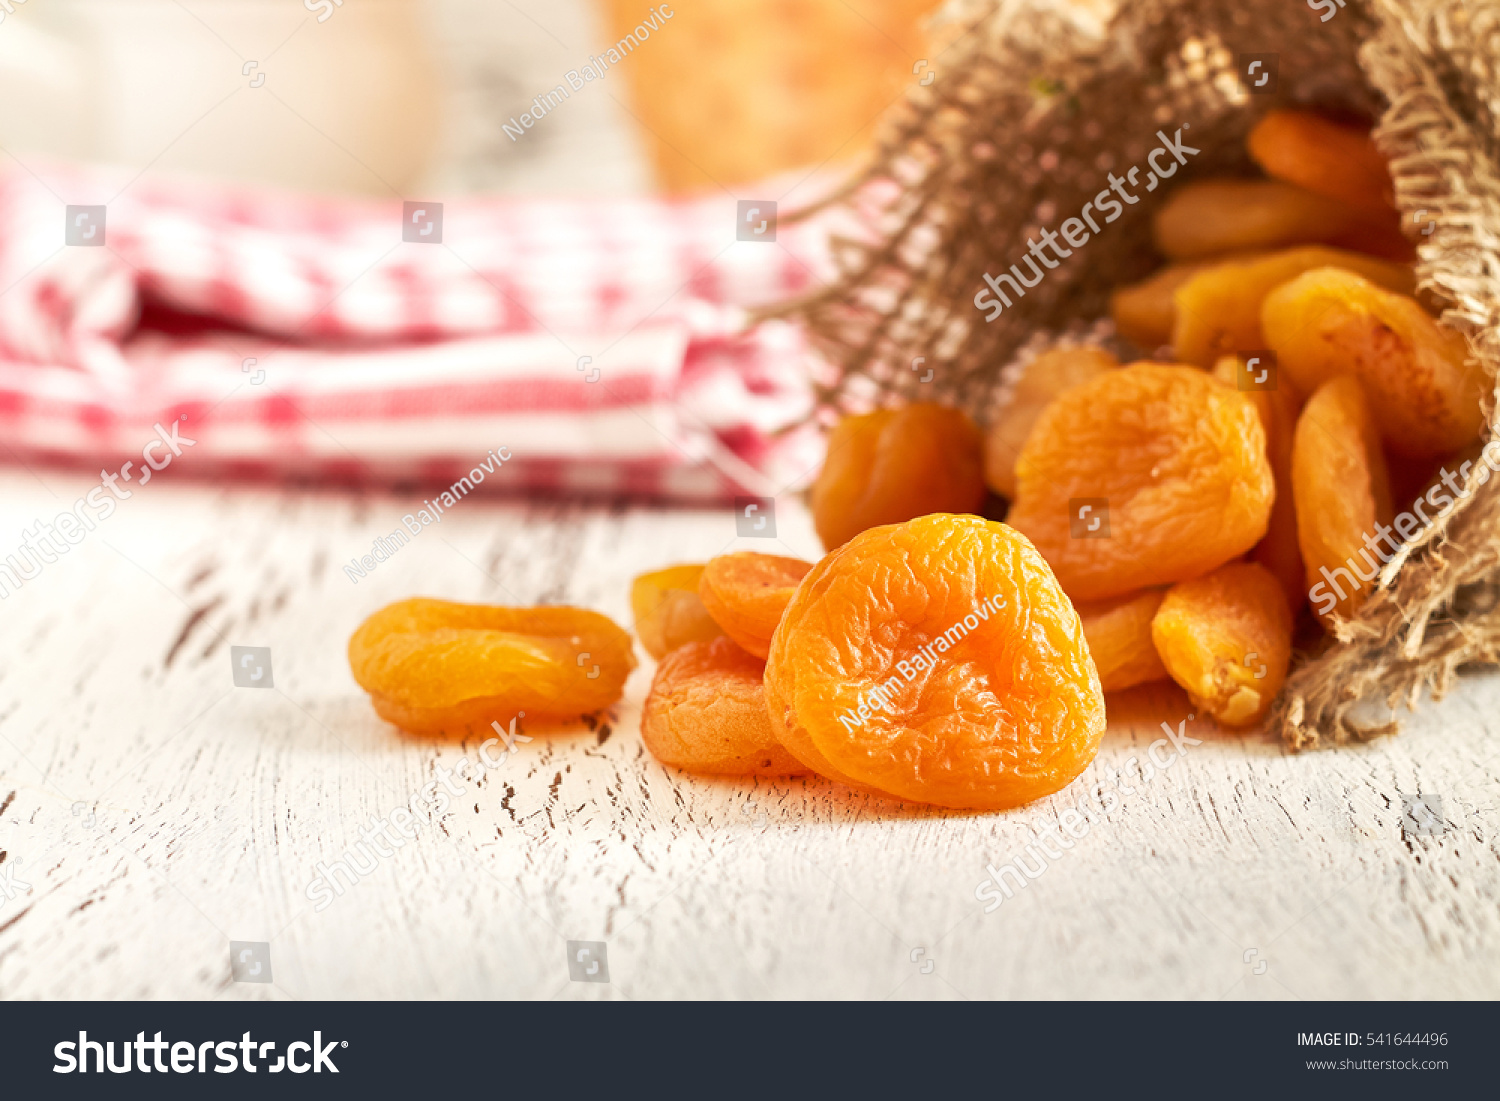 Dried apricots on white rustic wooden background #541644496